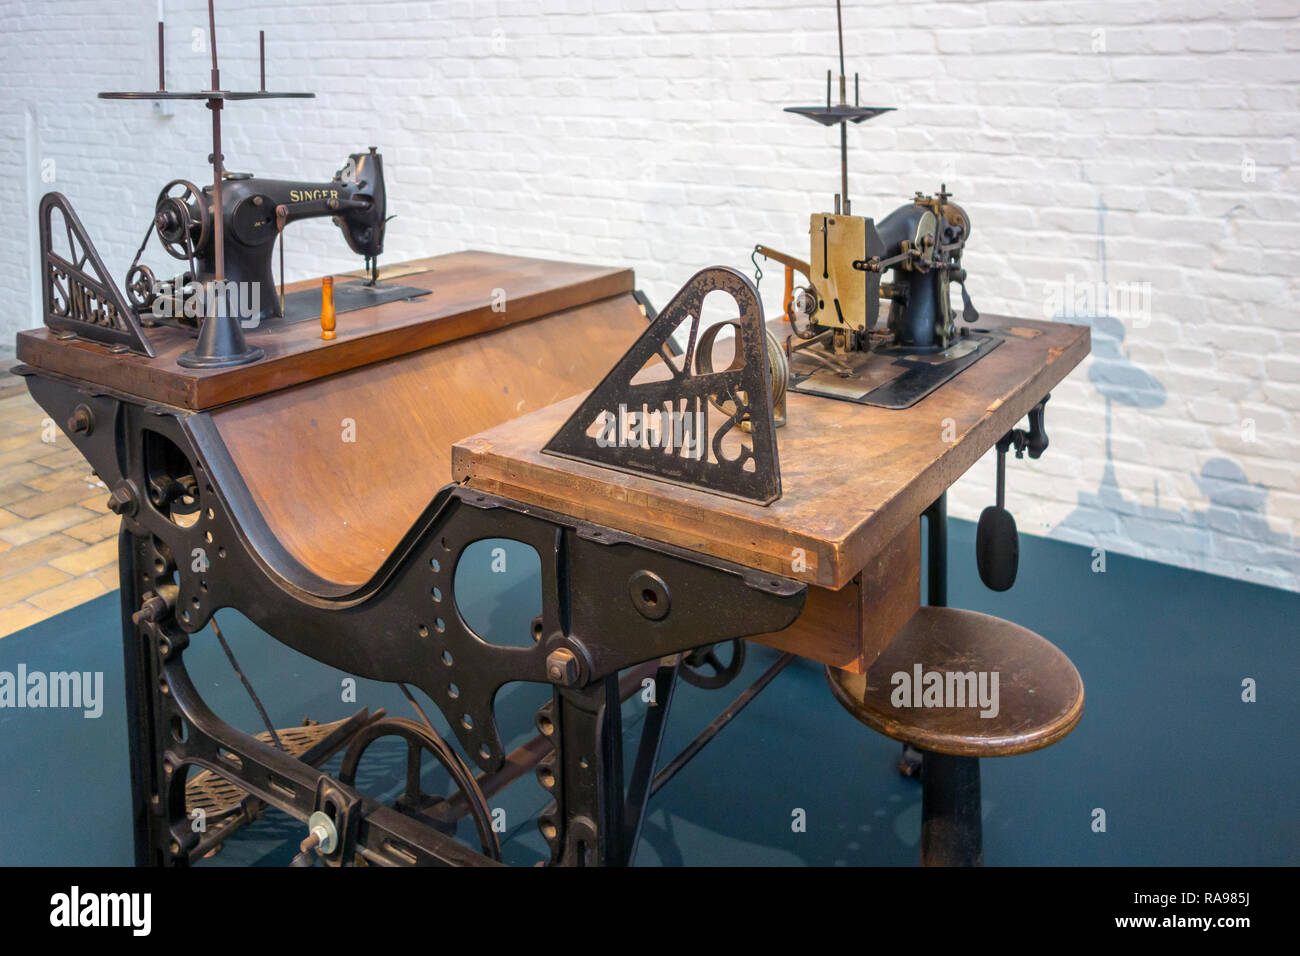 20th century industrial needlework table with two Singer sewing machines in textile factory at MIAT / Industriemuseum, Ghent, Belgium - Stock Image